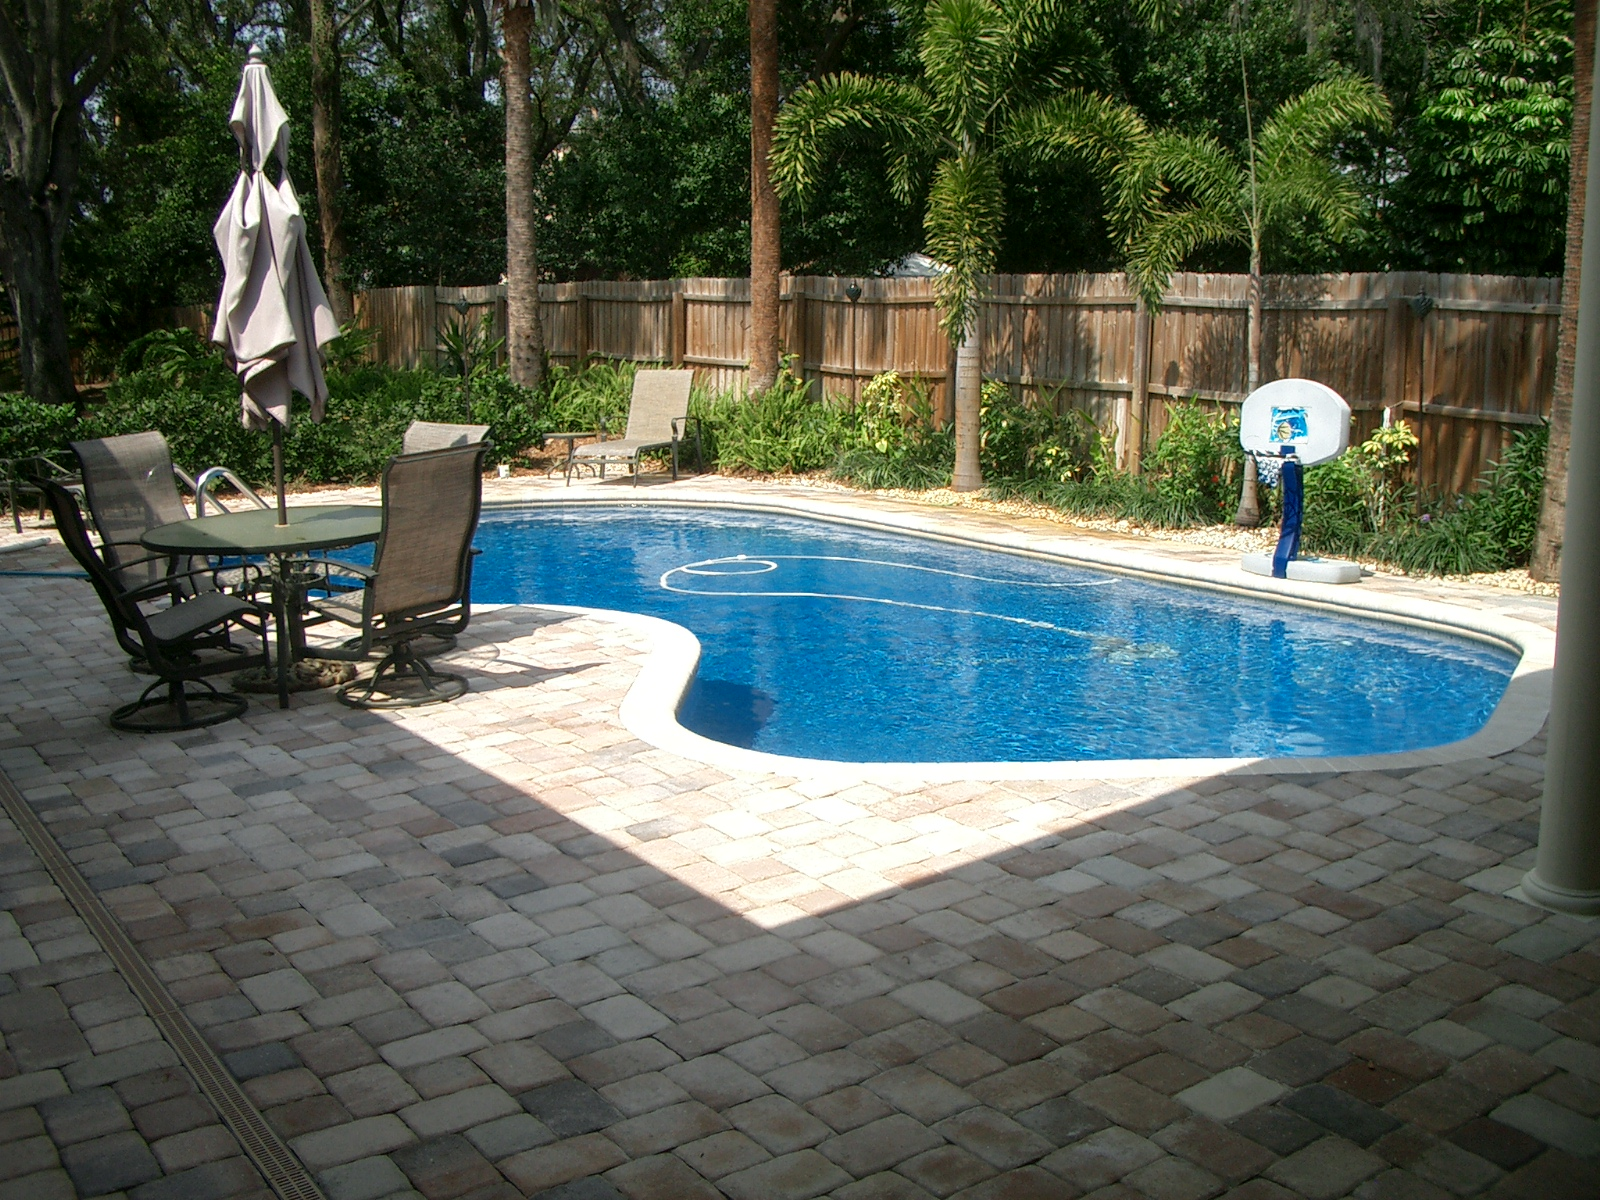 Pool Designs For Small Backyards Creative Backyard Ideas With Pool  Large And Beautiful Photosphoto To .